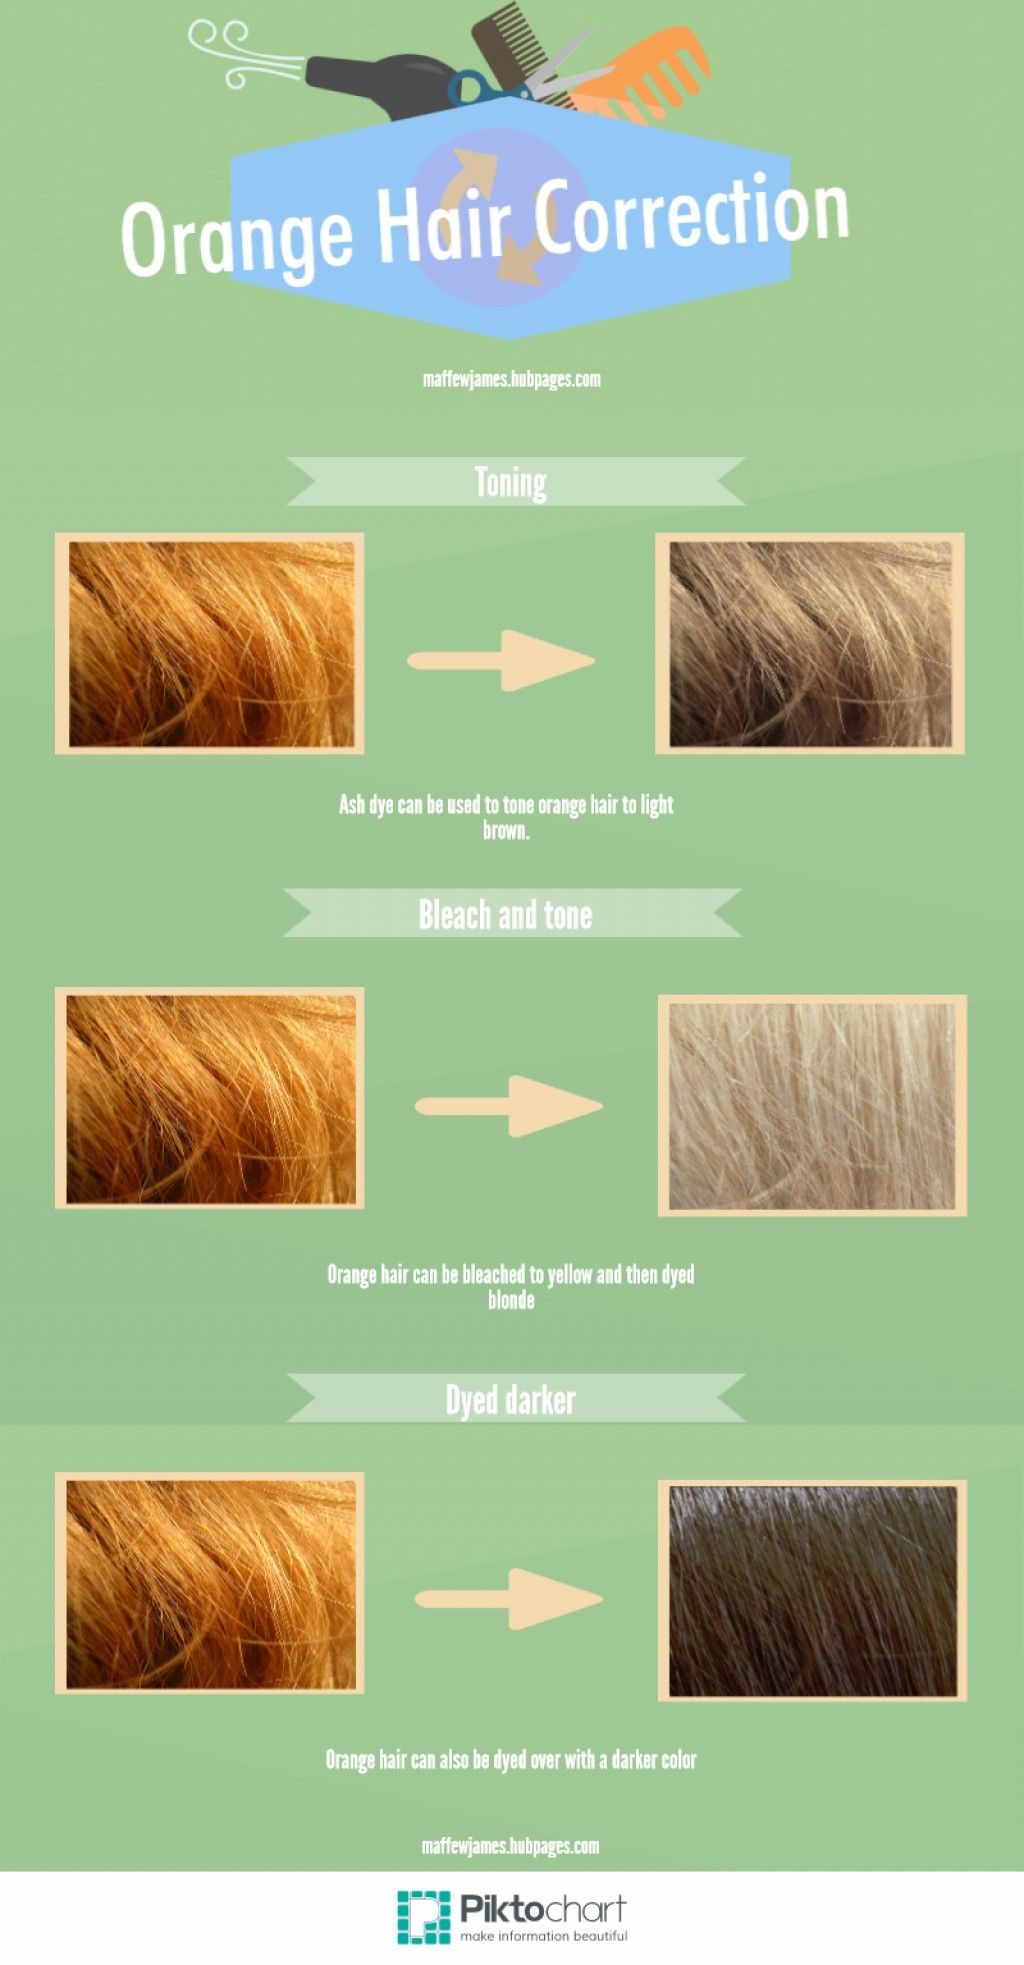 Color Correction How To Fix Orange Hair Brassy Hair Tone Orange Hair Hair Color Orange